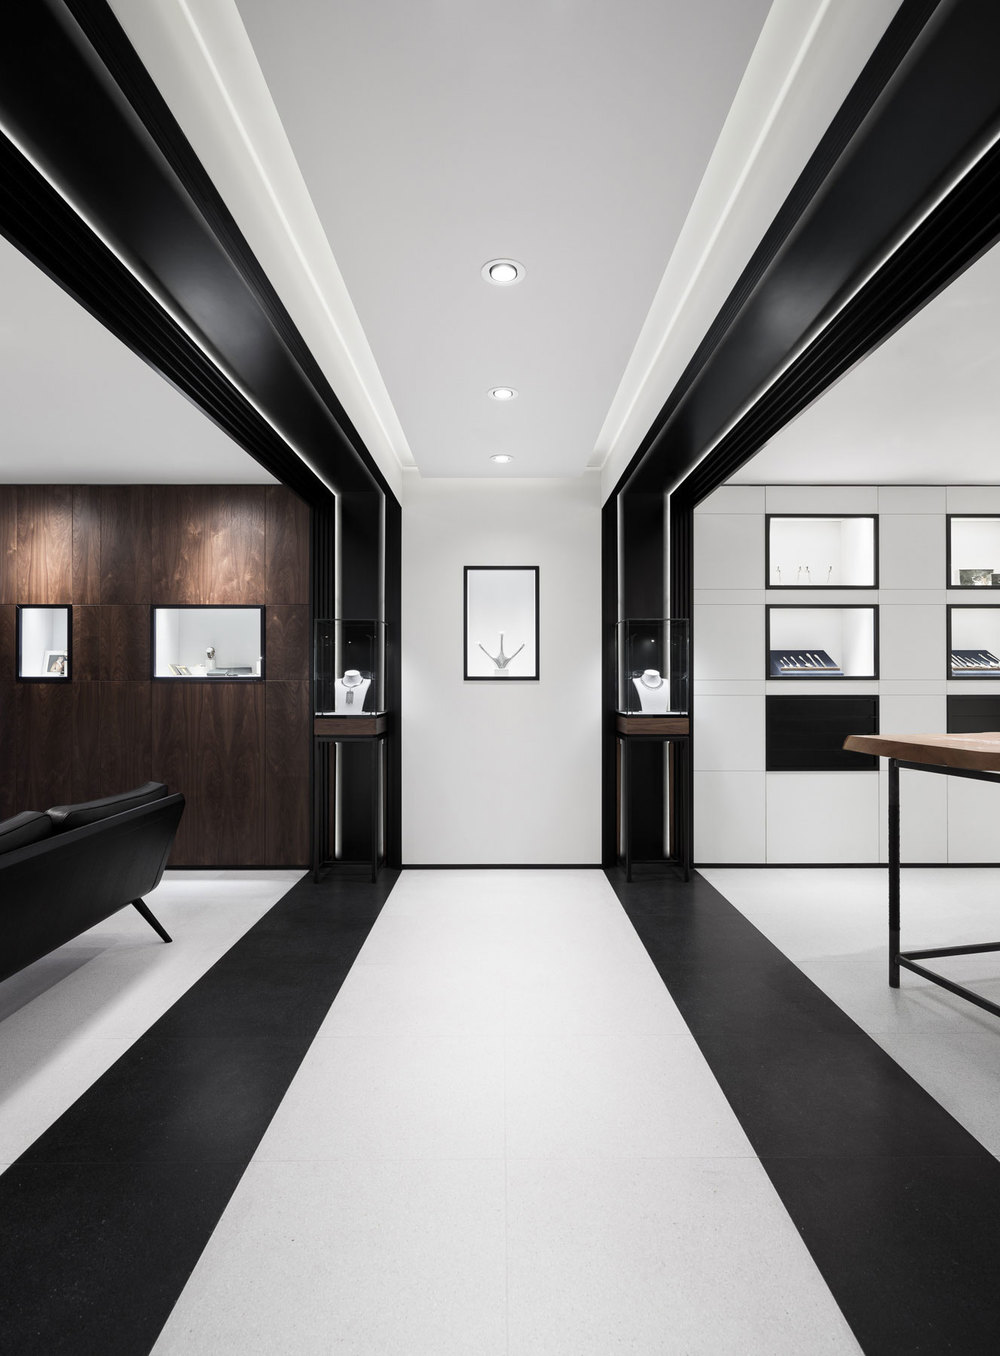 david thulstrup designs symmetrical space for georg jensen boutique knstrct